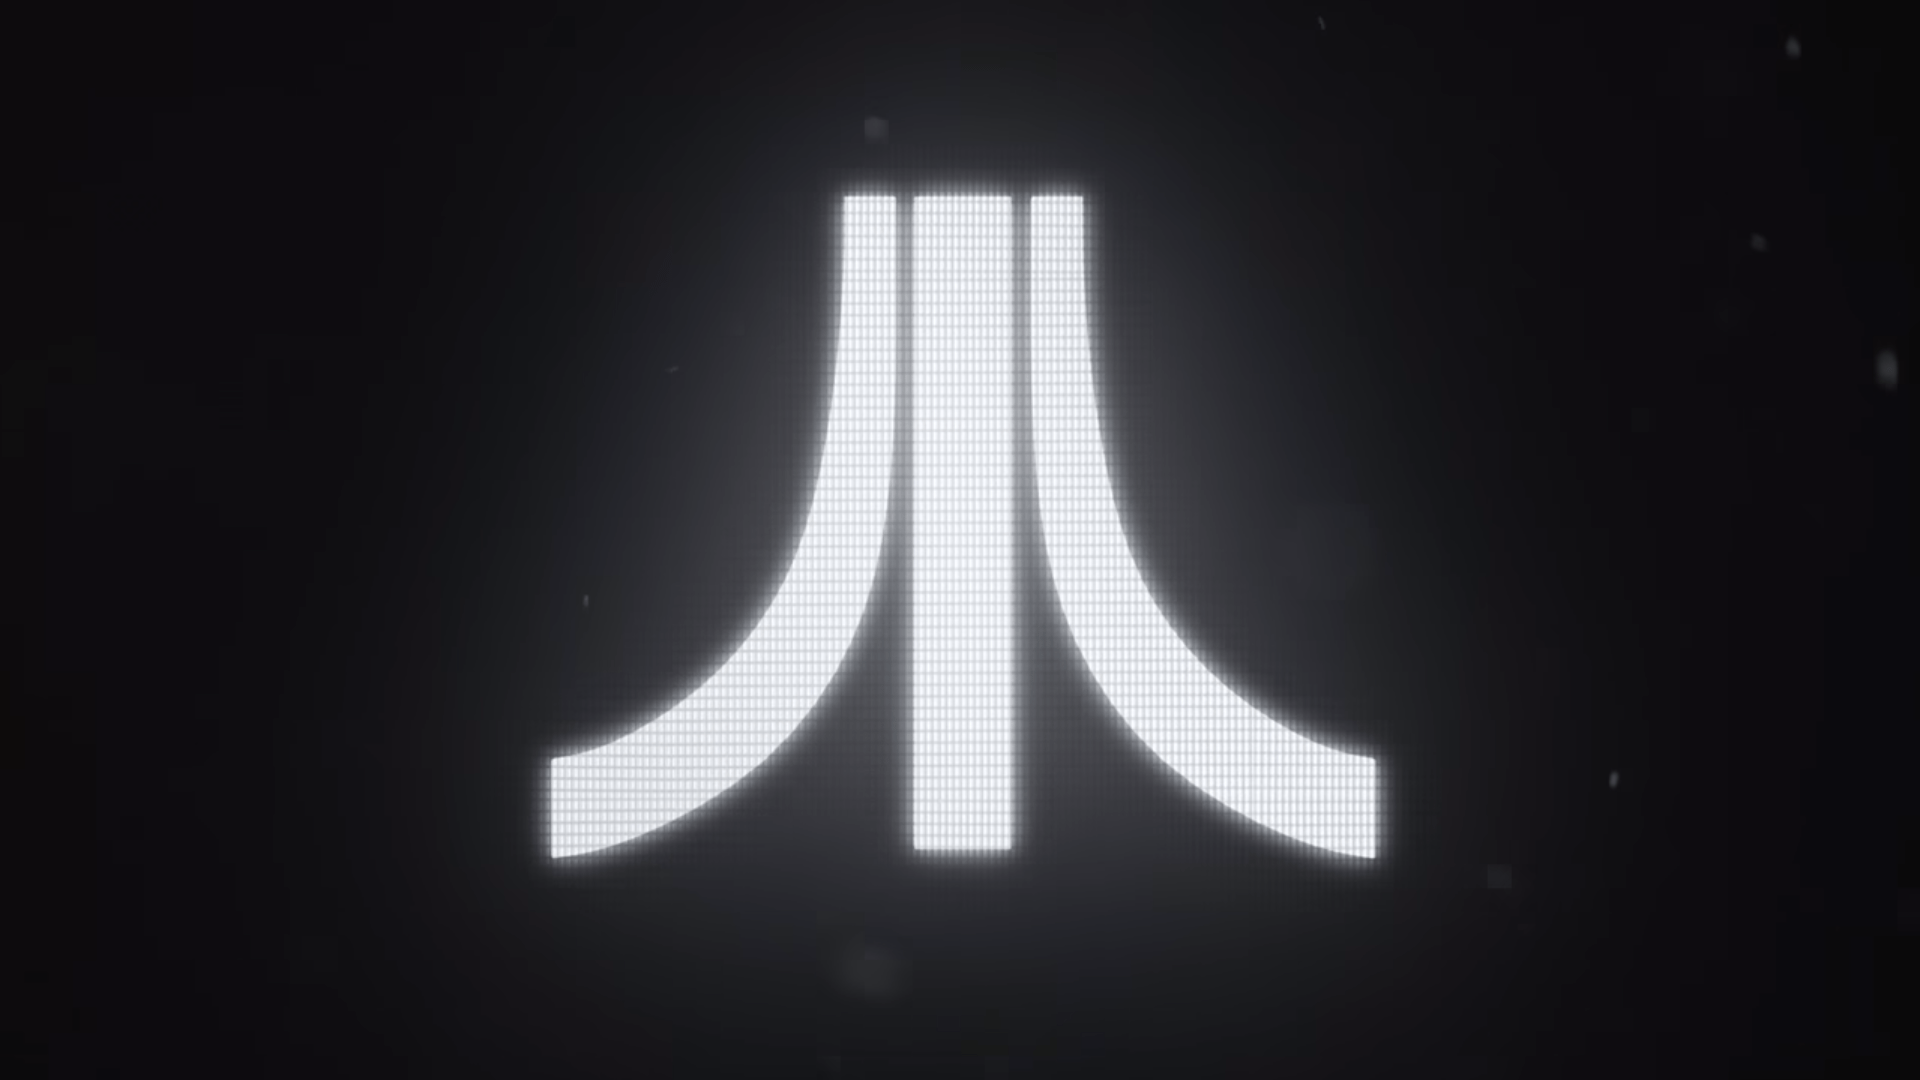 Atari CEO Confirms A New Atari Console Is Being Made